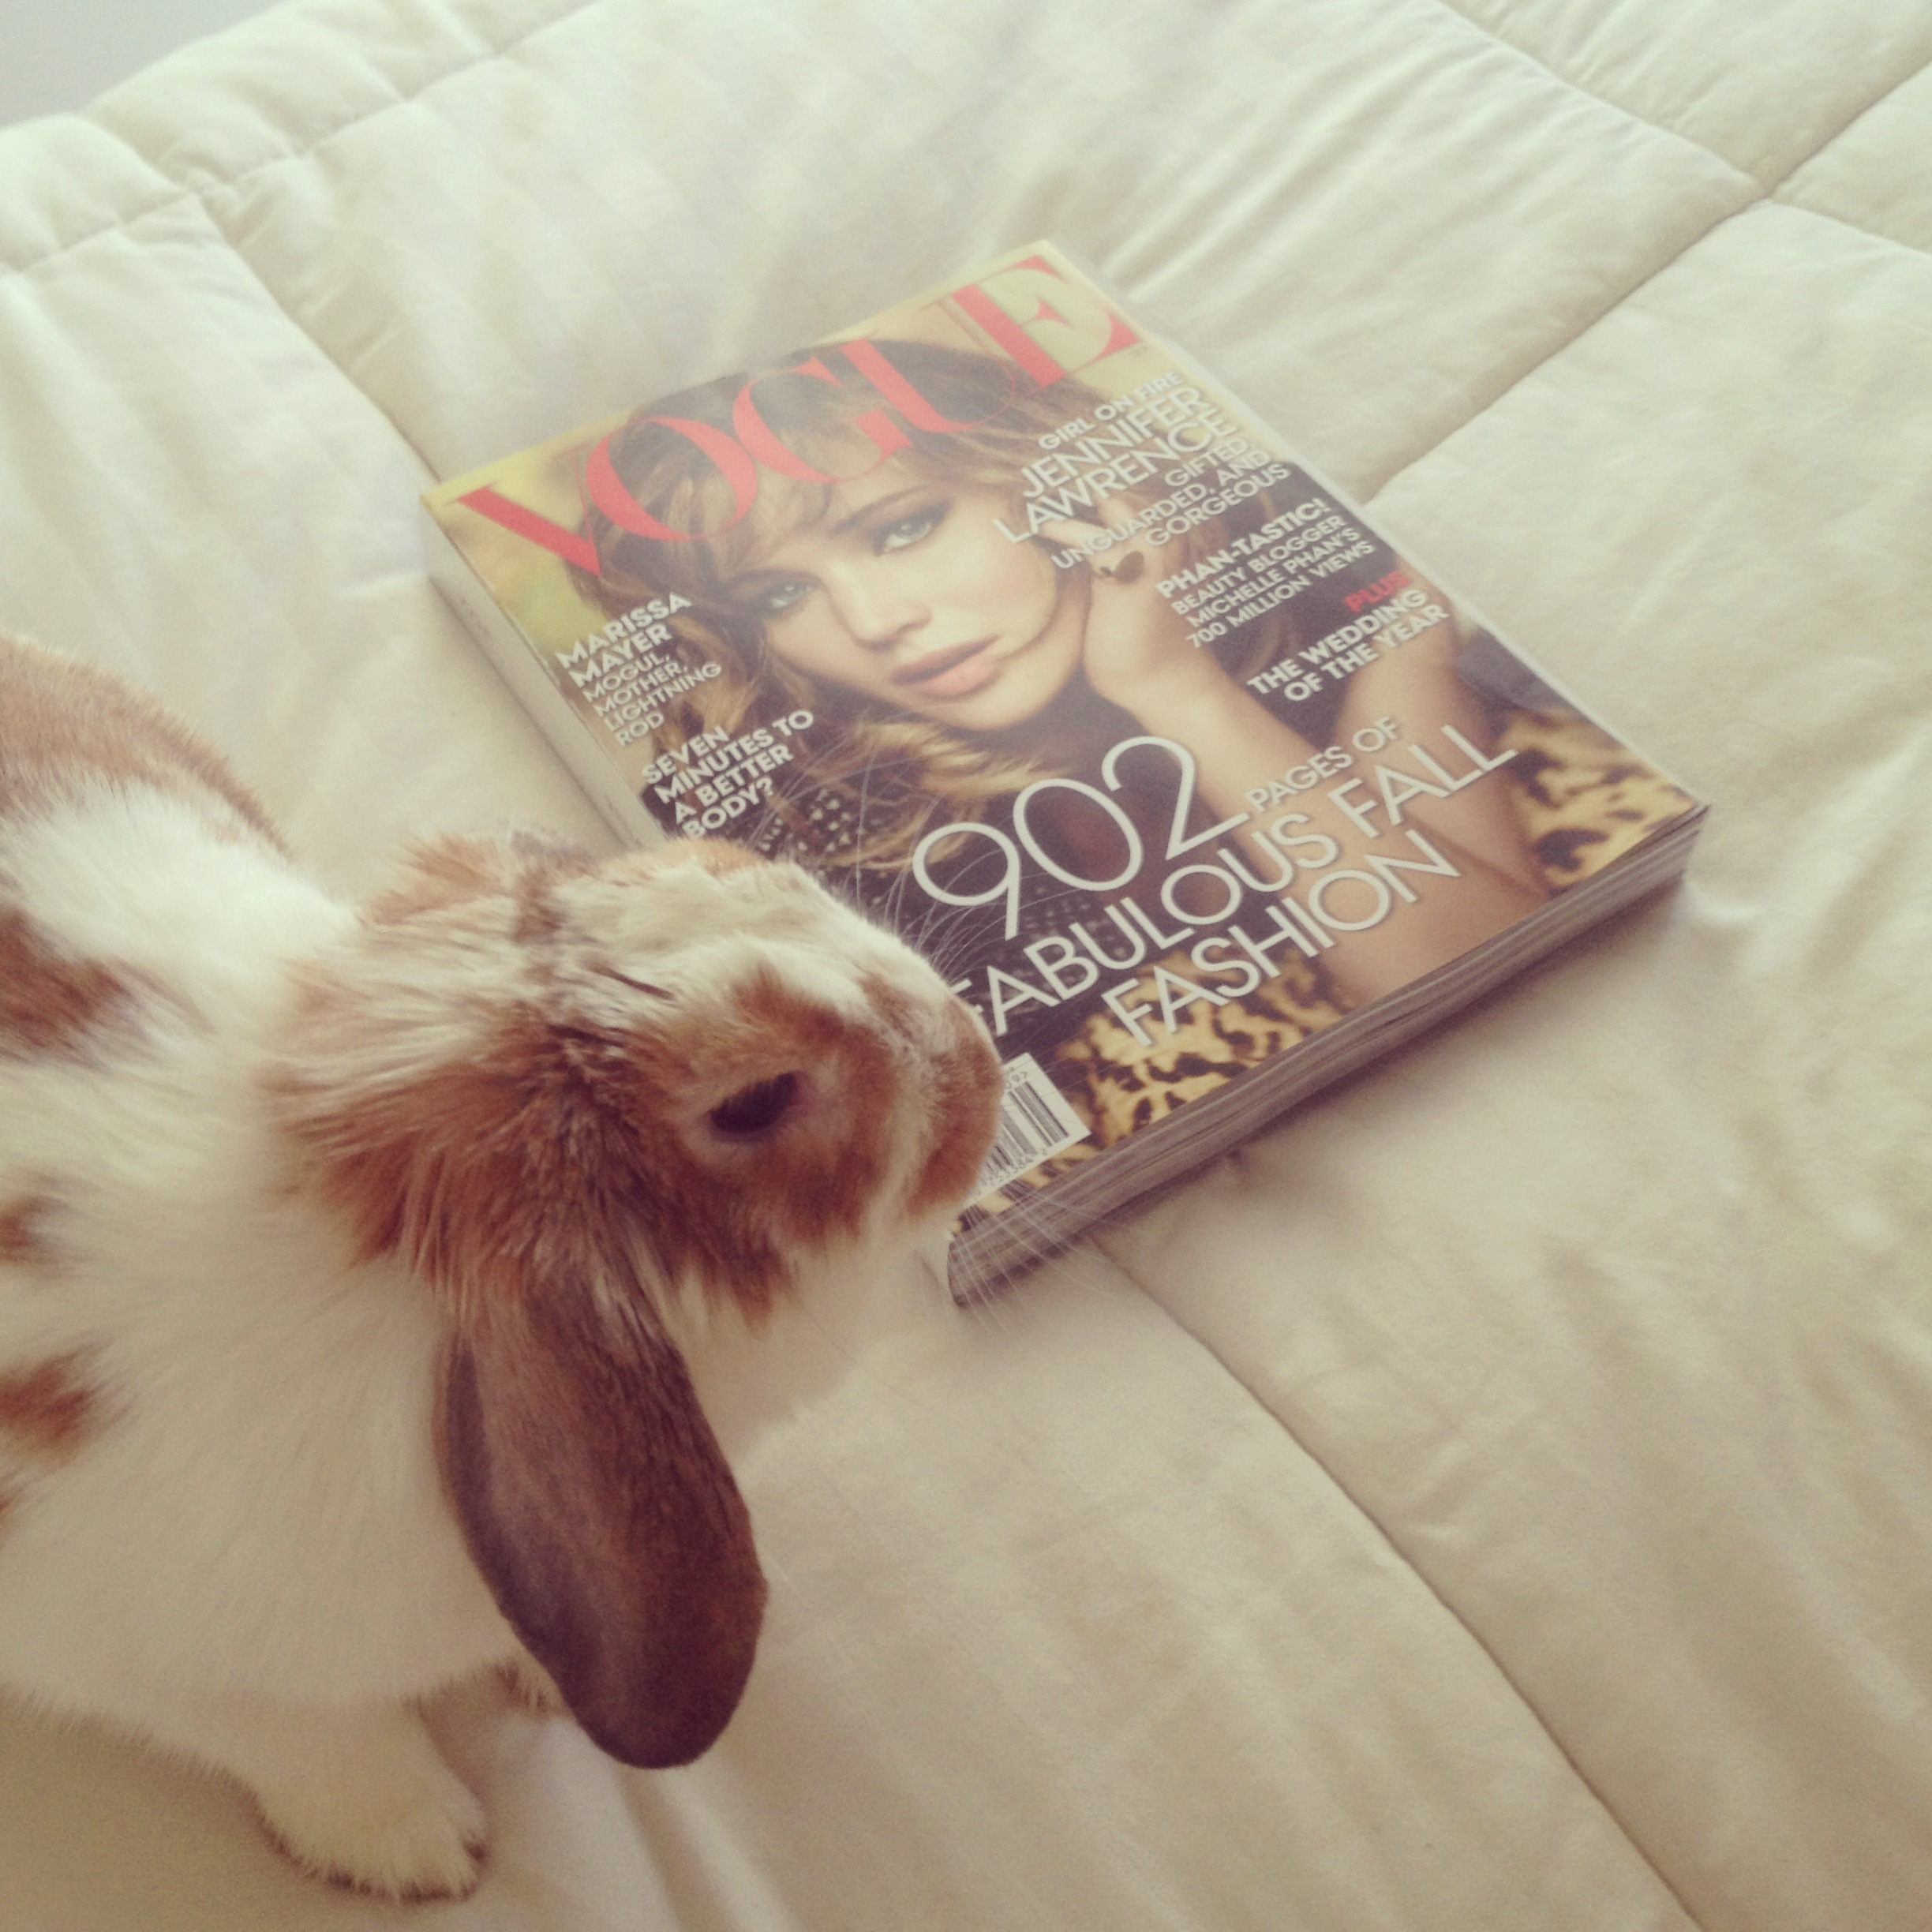 bunny and vogue